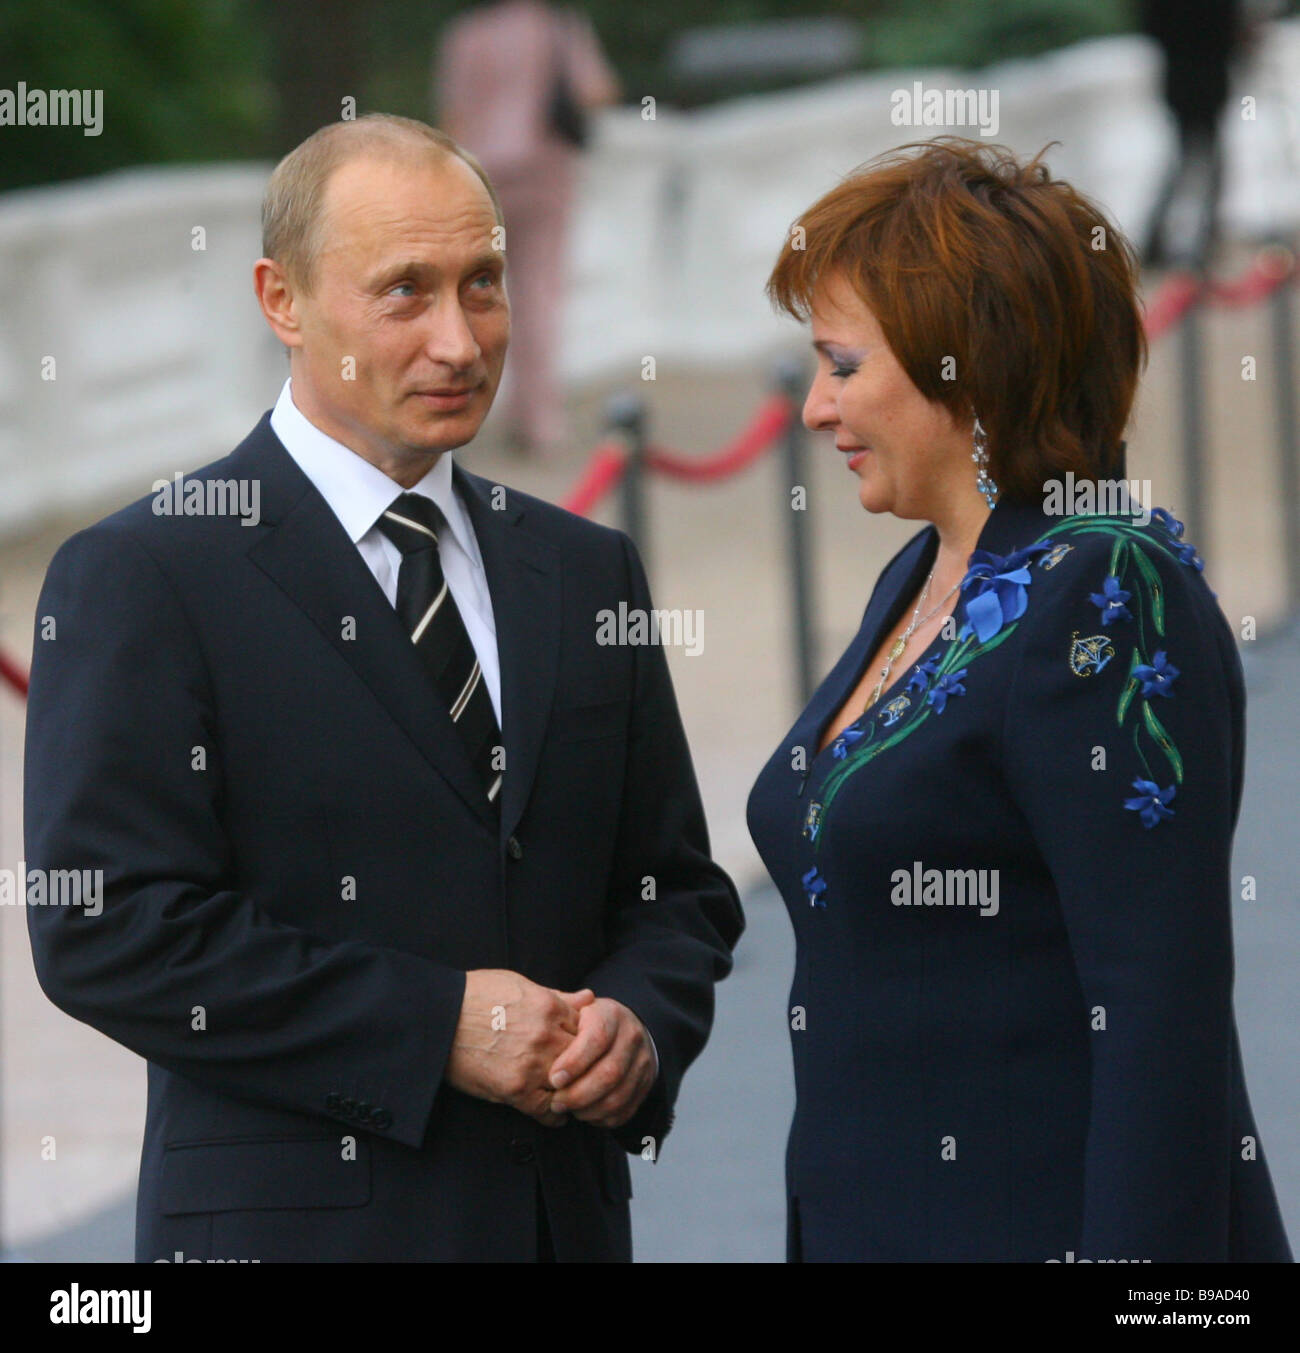 Russia S President Vladimir Putin And Wife Before The Informal Dinner Stock Photo Alamy